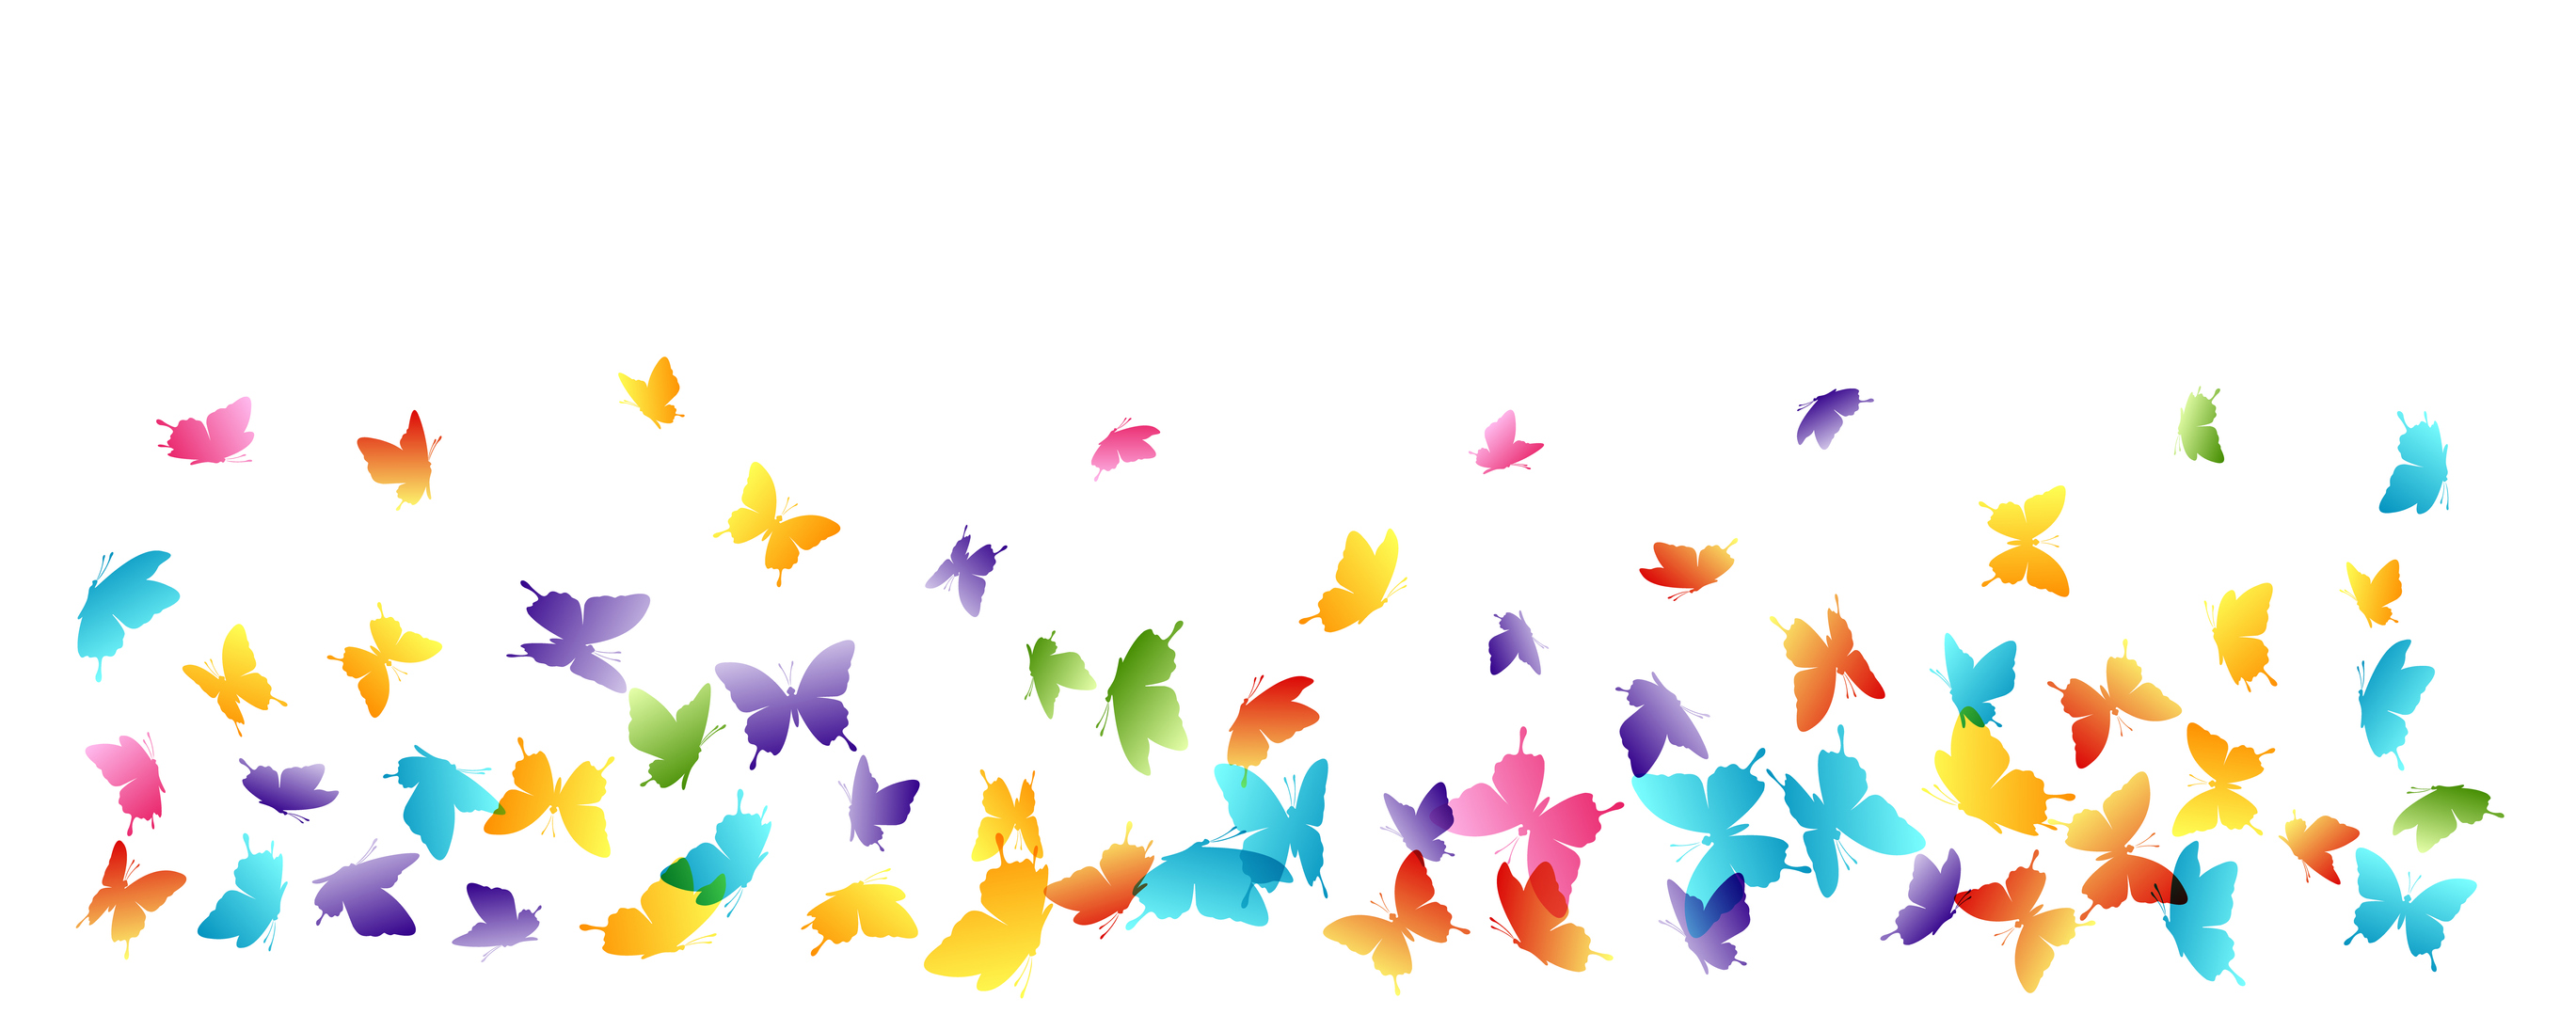 What a kaleidoscope of butterflies can teach us about memory care